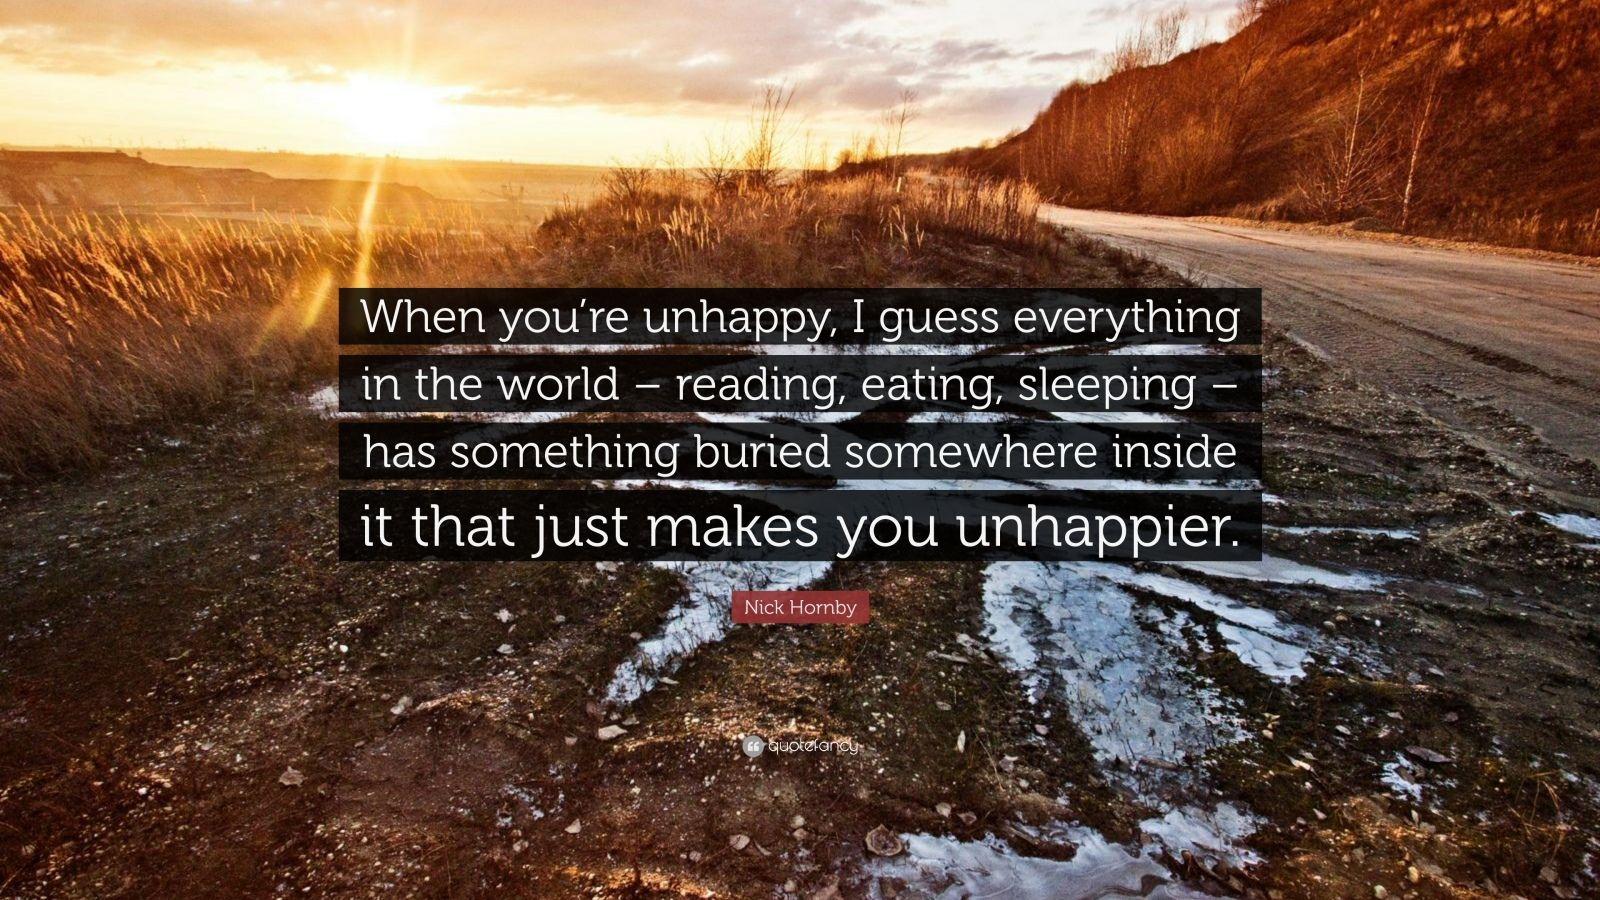 """Nick Hornby Quote: """"When you're unhappy, I guess everything in the world – reading, eating, sleeping – has something buried somewhere inside it that just makes you unhappier."""""""